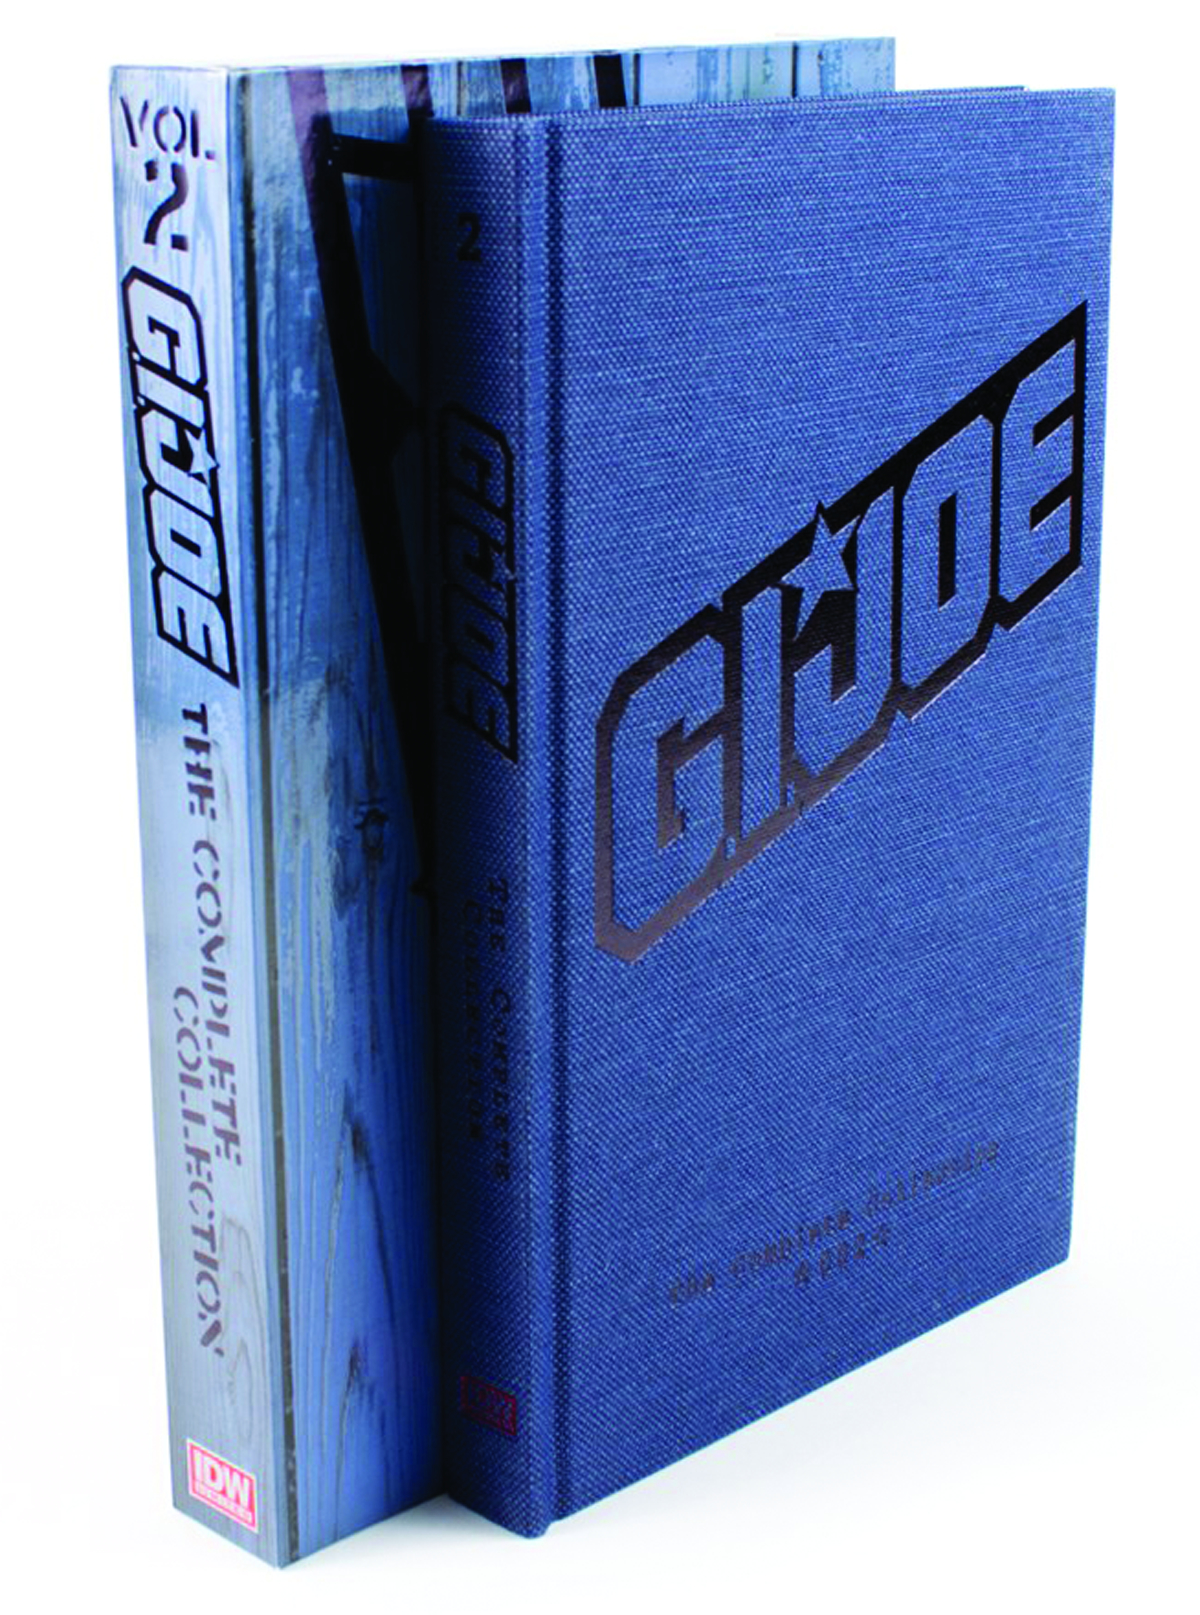 GI JOE COMPLETE COLL HC VOL 02 RED LABEL ED